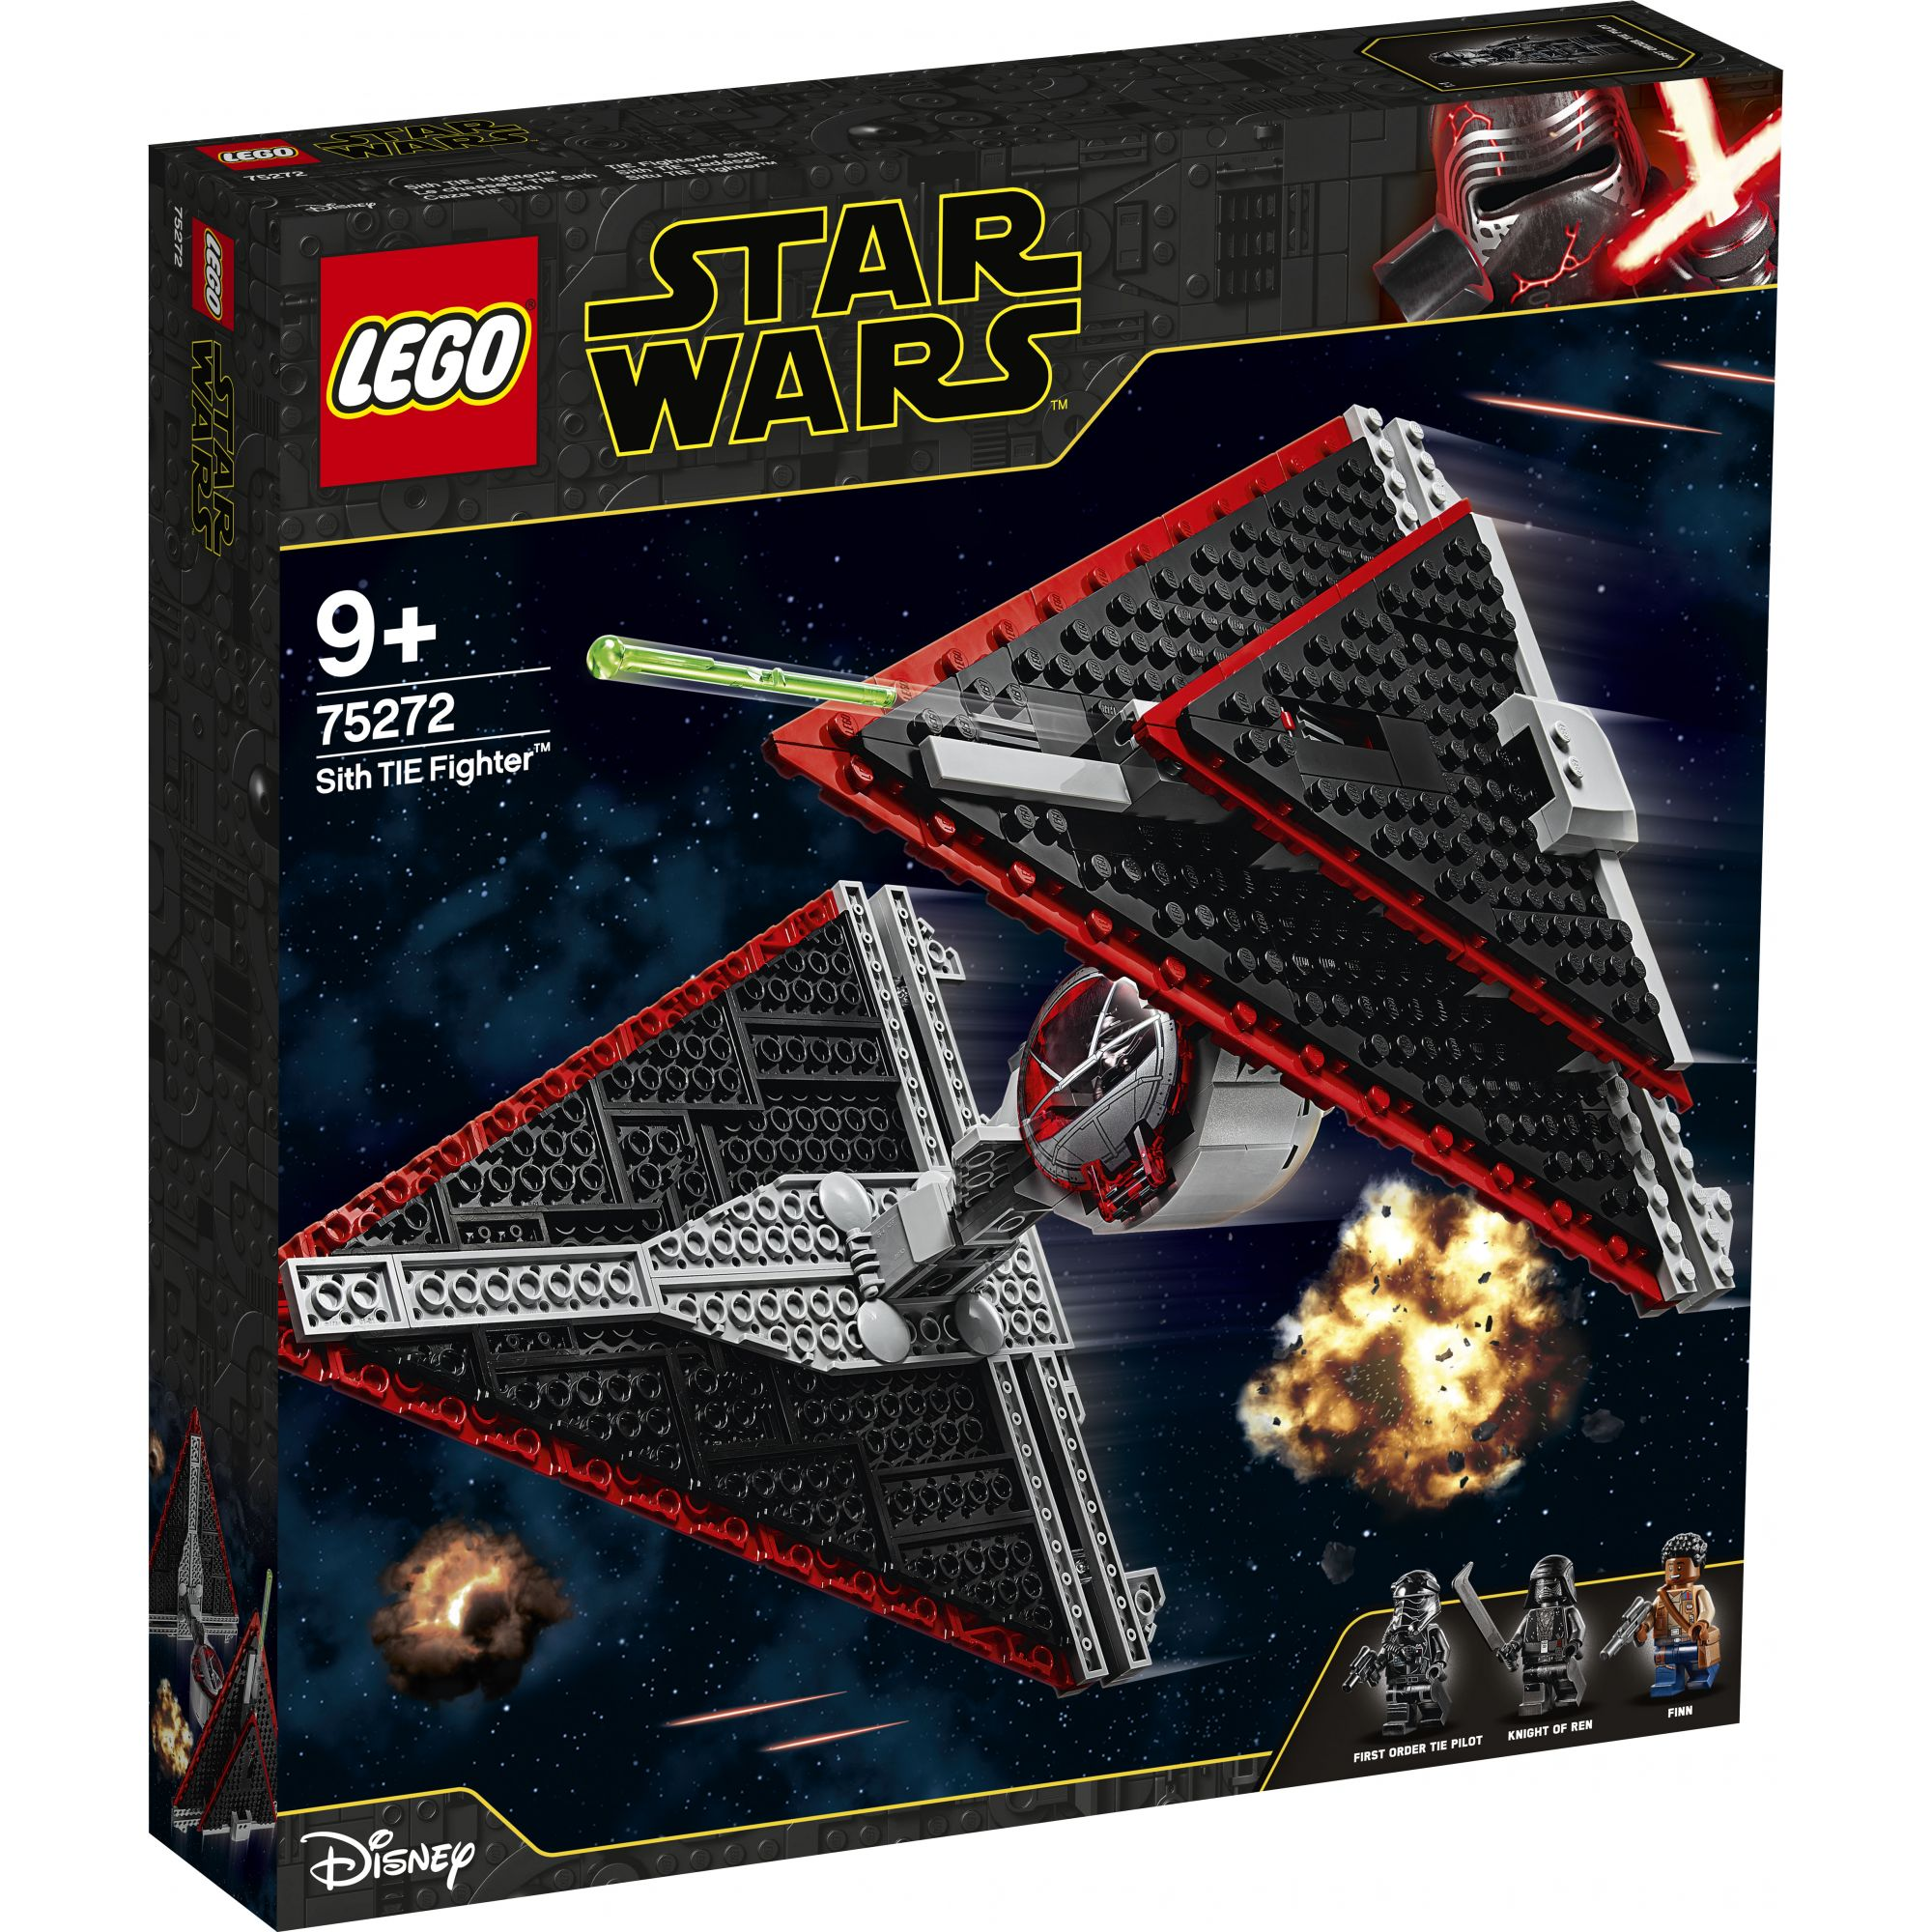 LEGO Star Wars Episode IX Sith TIE Fighter - 75272